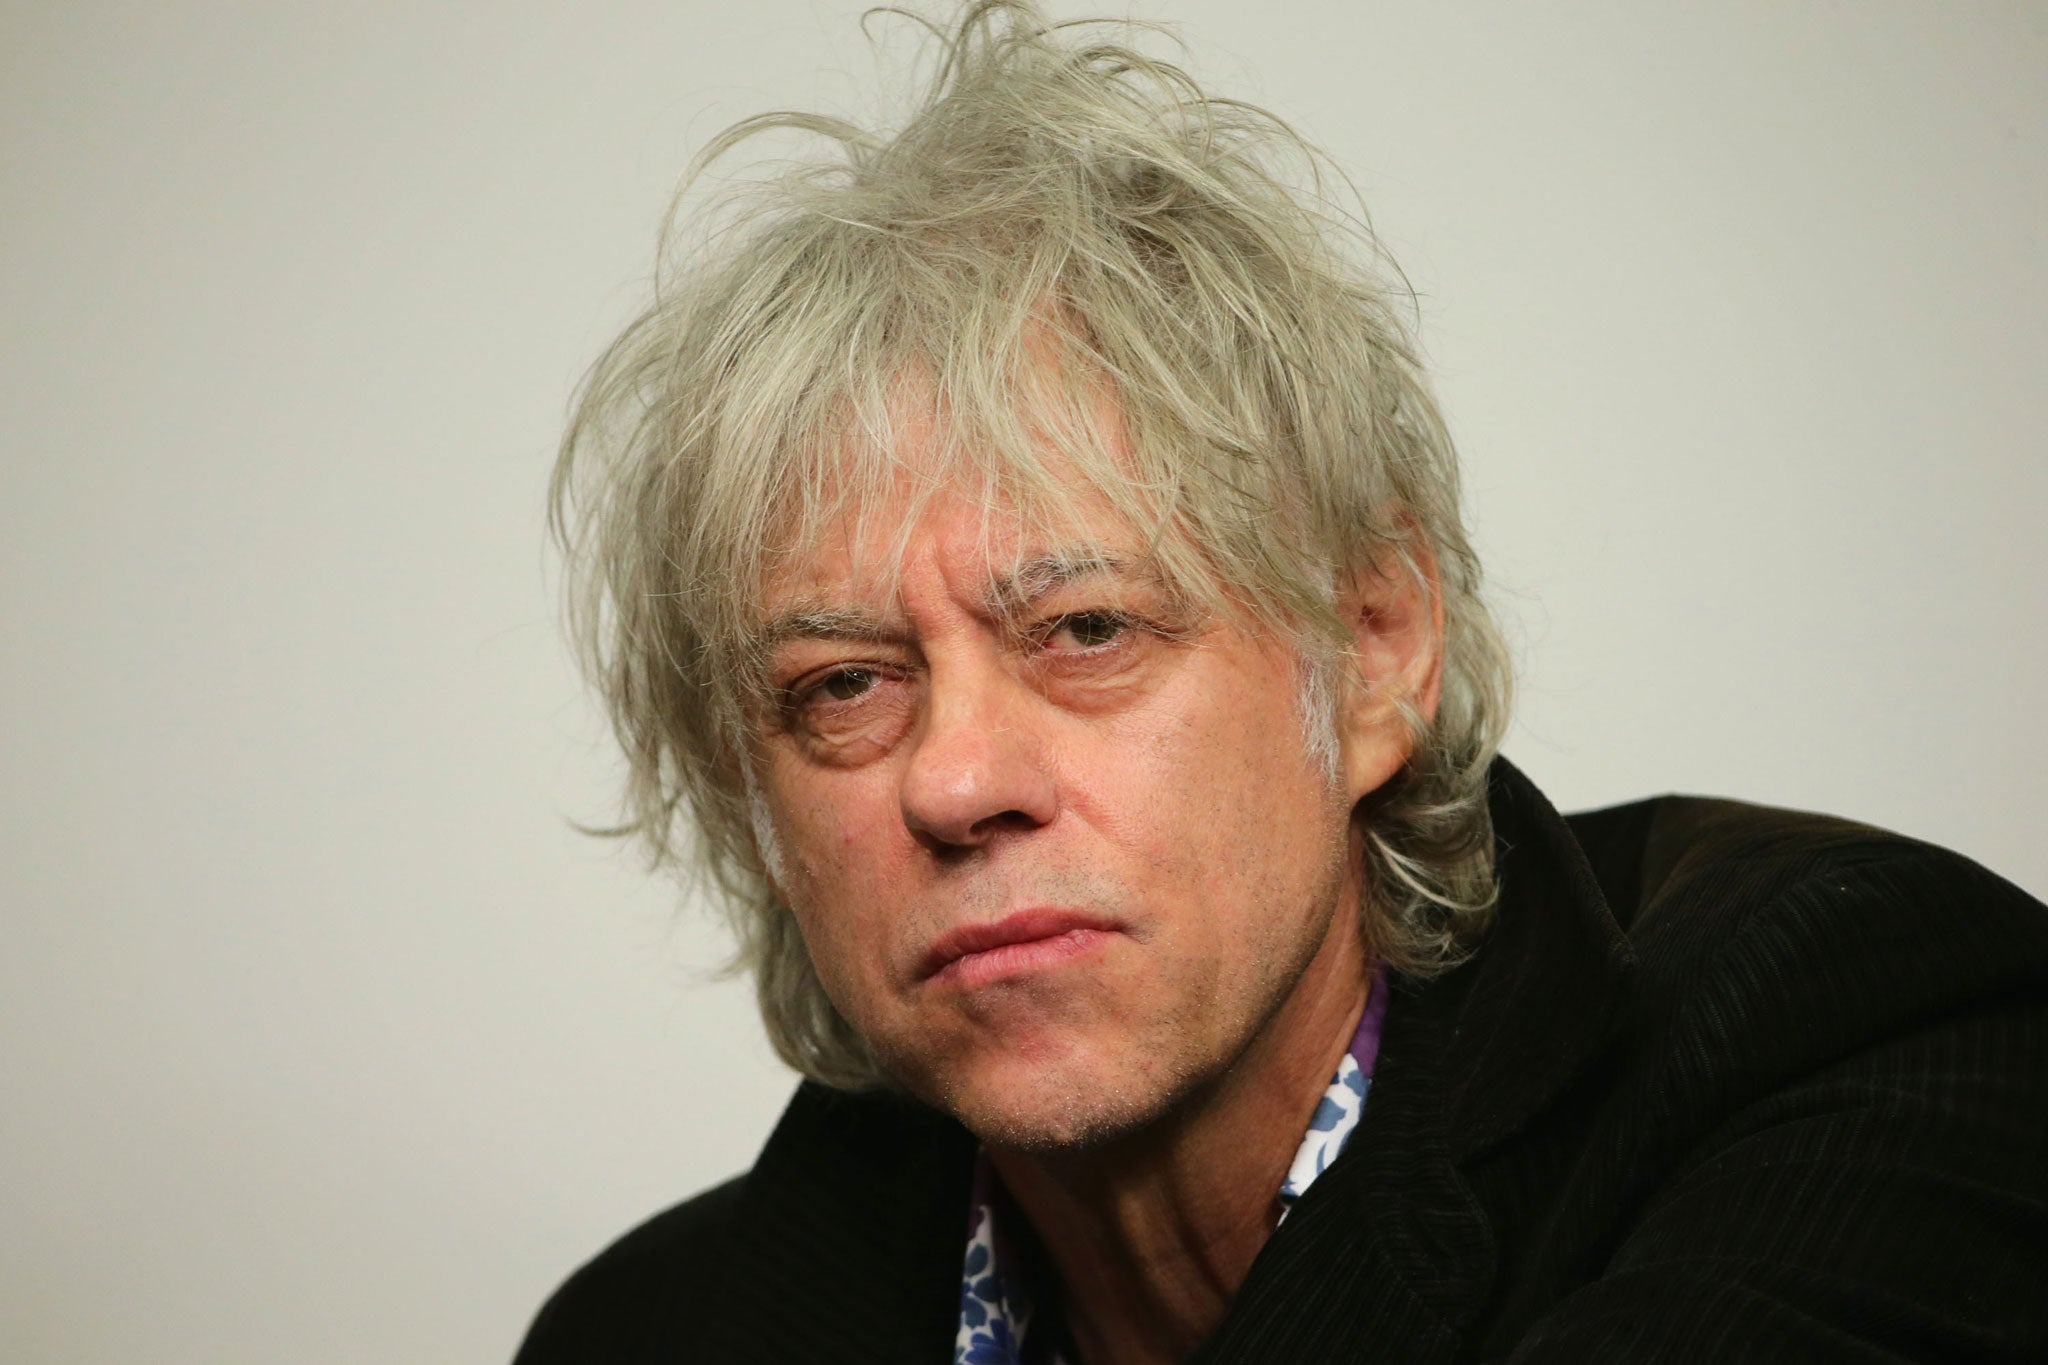 bob geldof - the great song of indifference lyrics